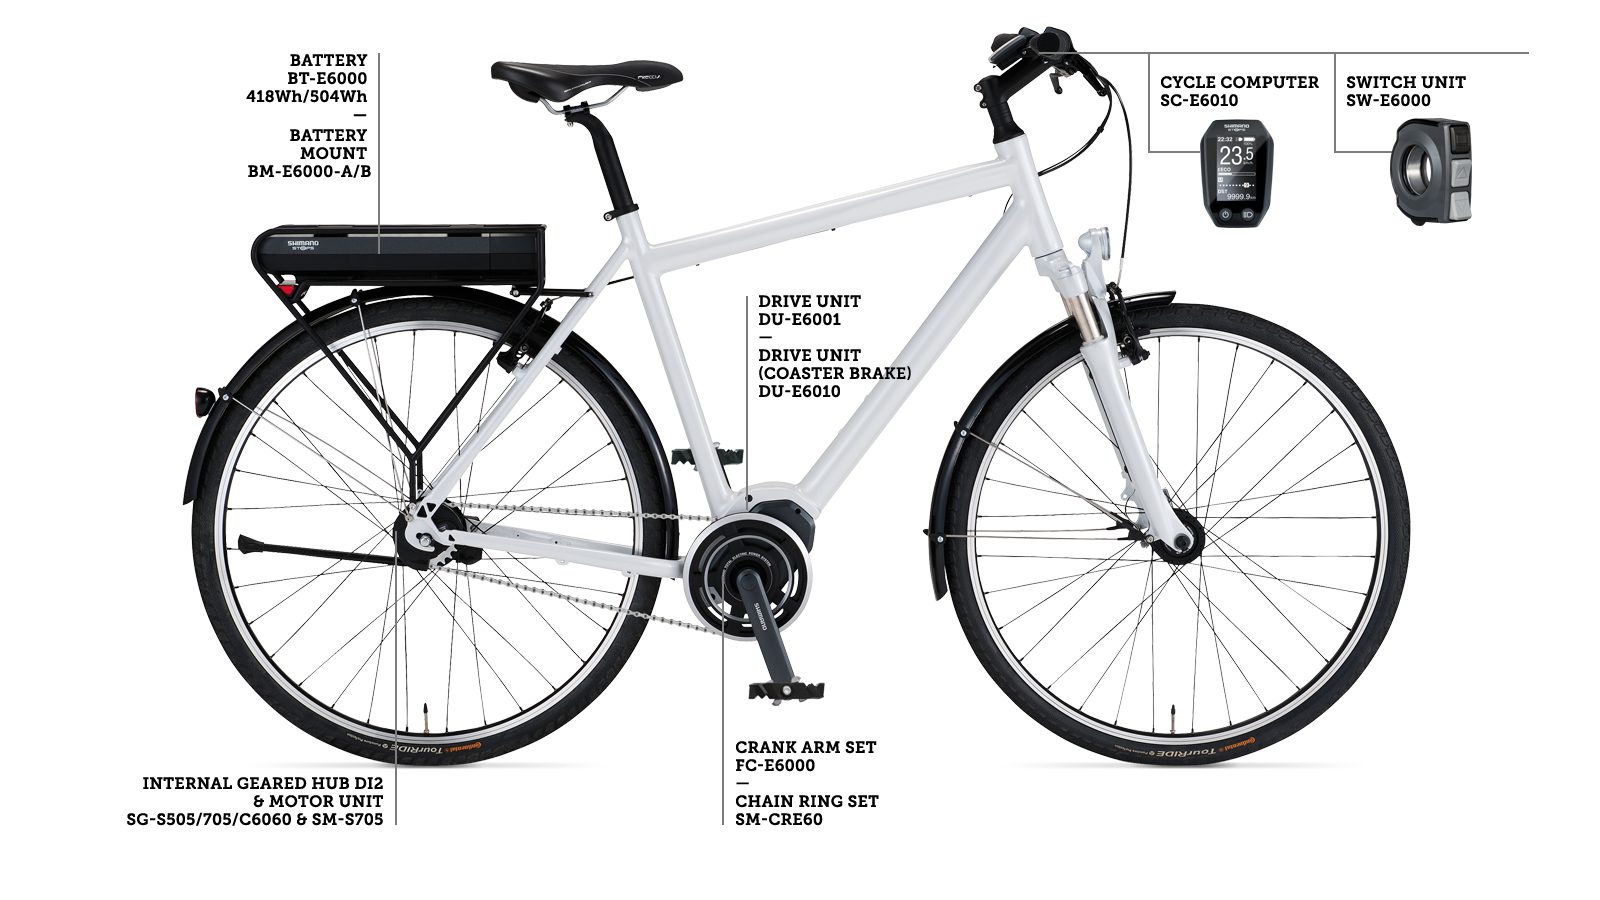 SHIMANO STEPS e-bike system - Fully enjoy nature